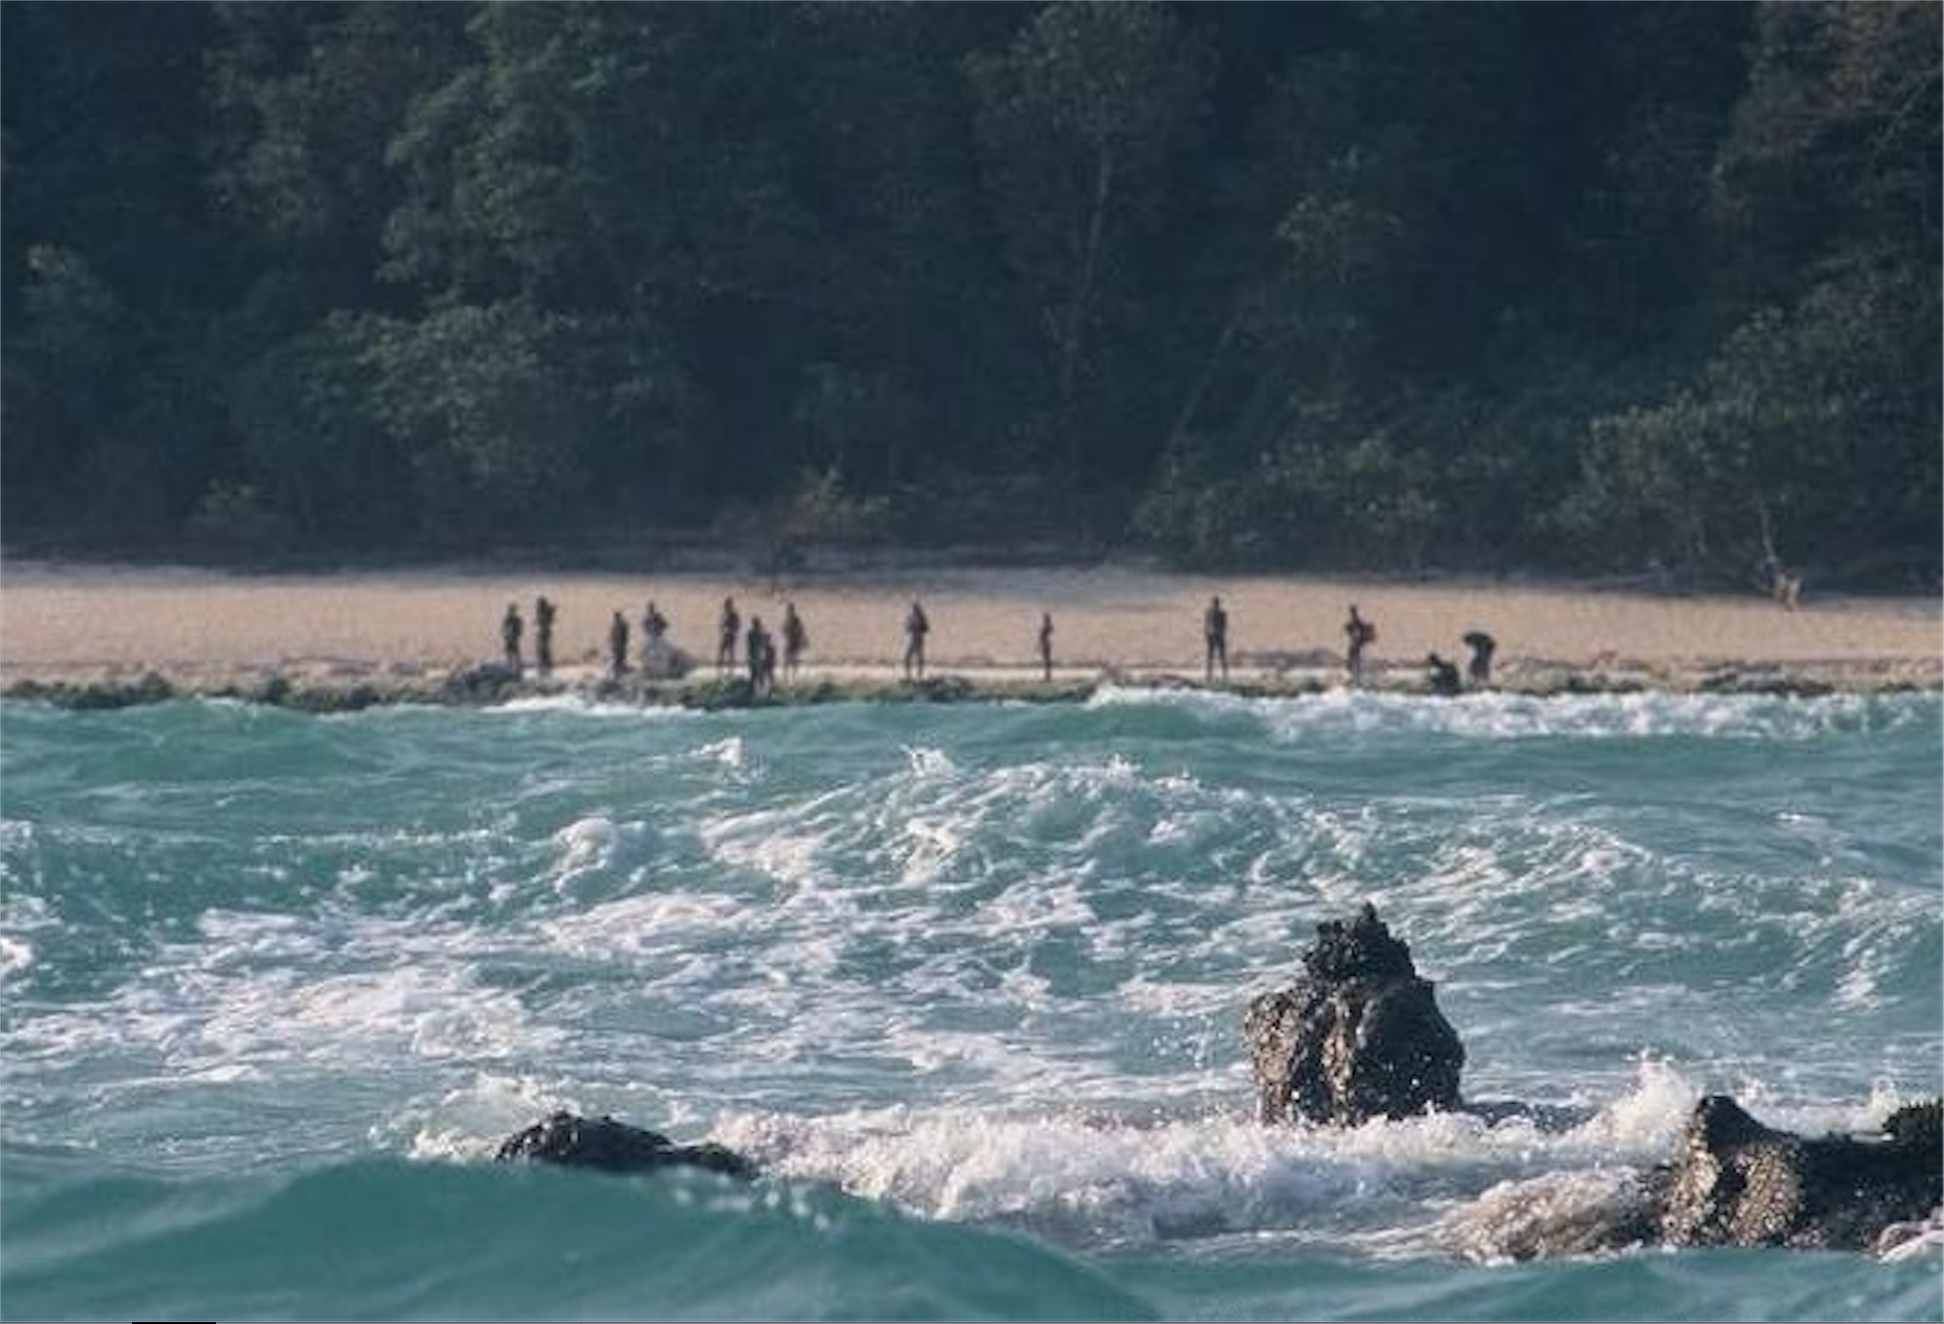 The Sentinelese protecting their island.